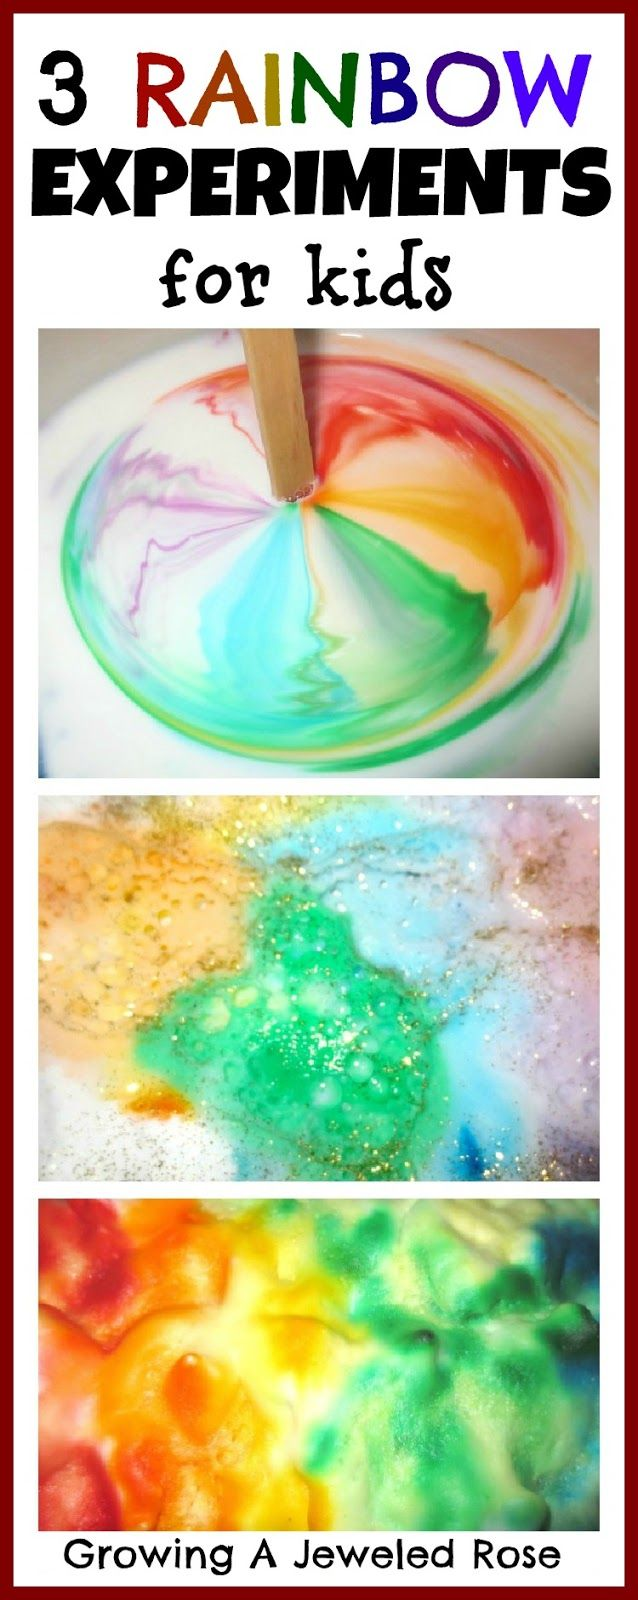 car thru color paint. drive on paper to make rainbows Puddle ...